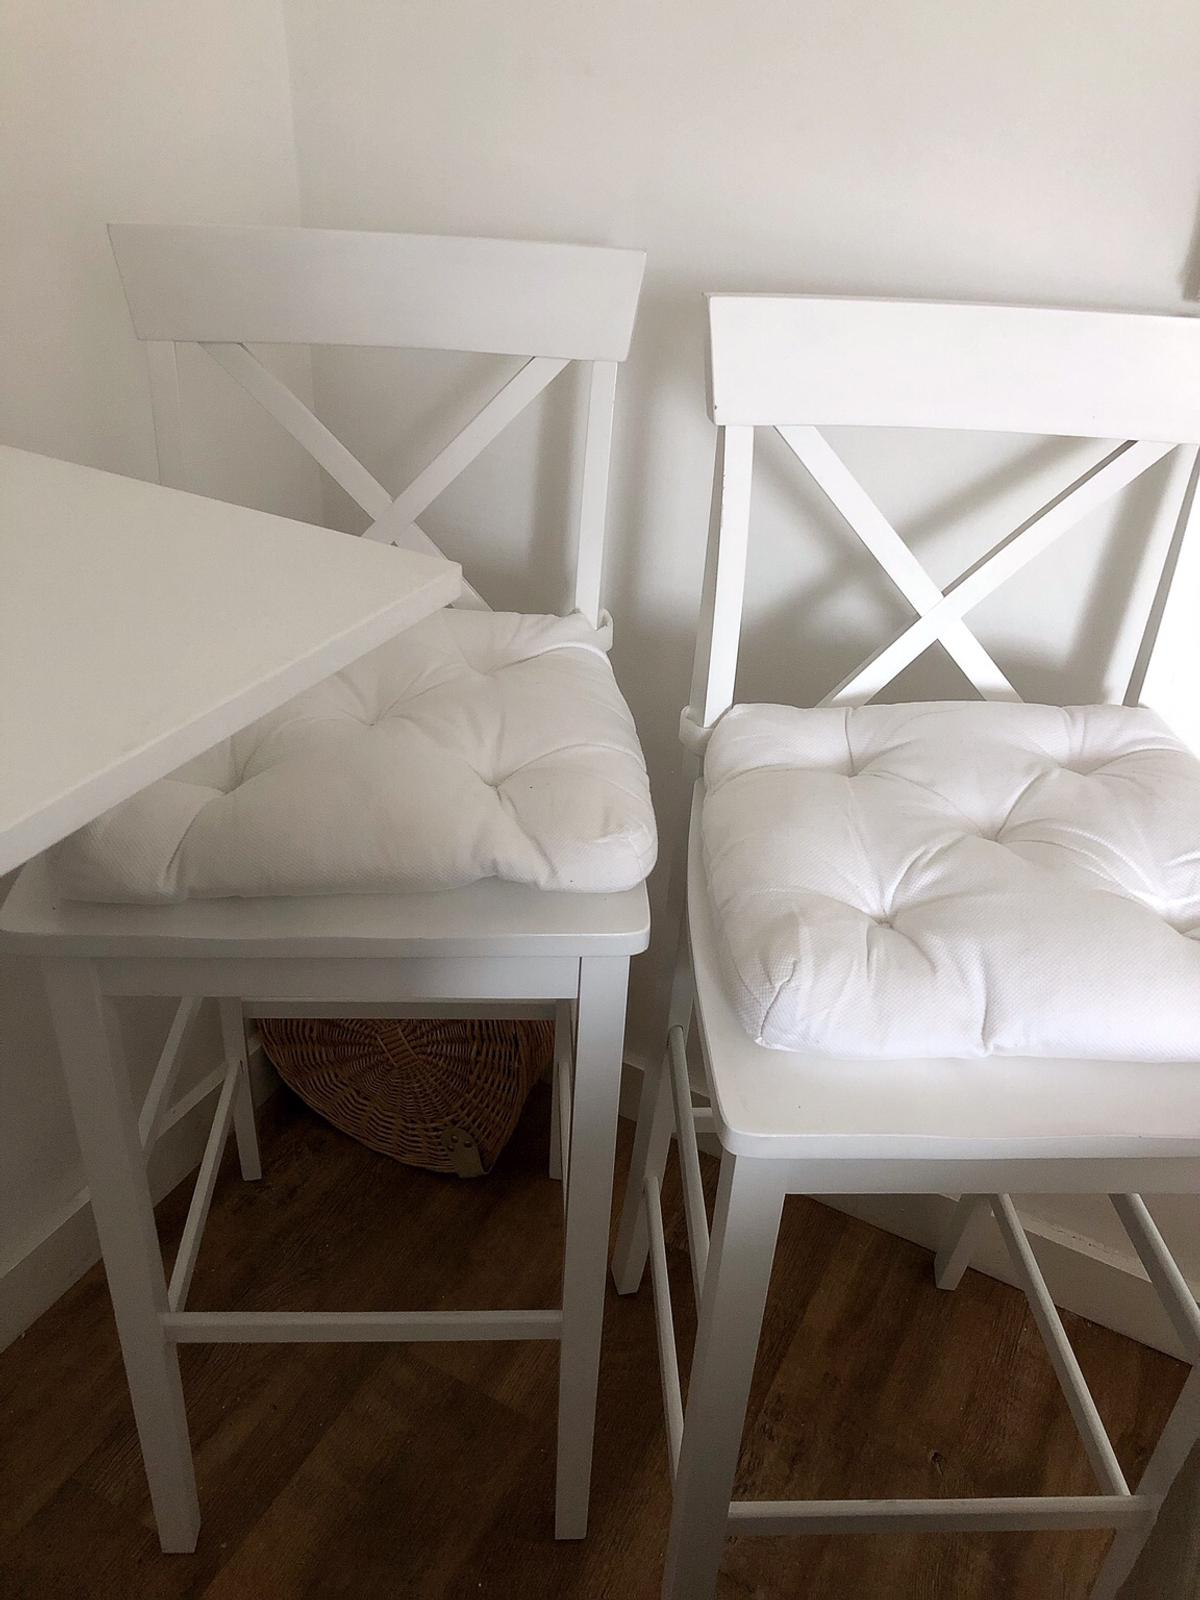 official photos 85139 c6391 White Wooden Breakfast Chairs Stools Argos